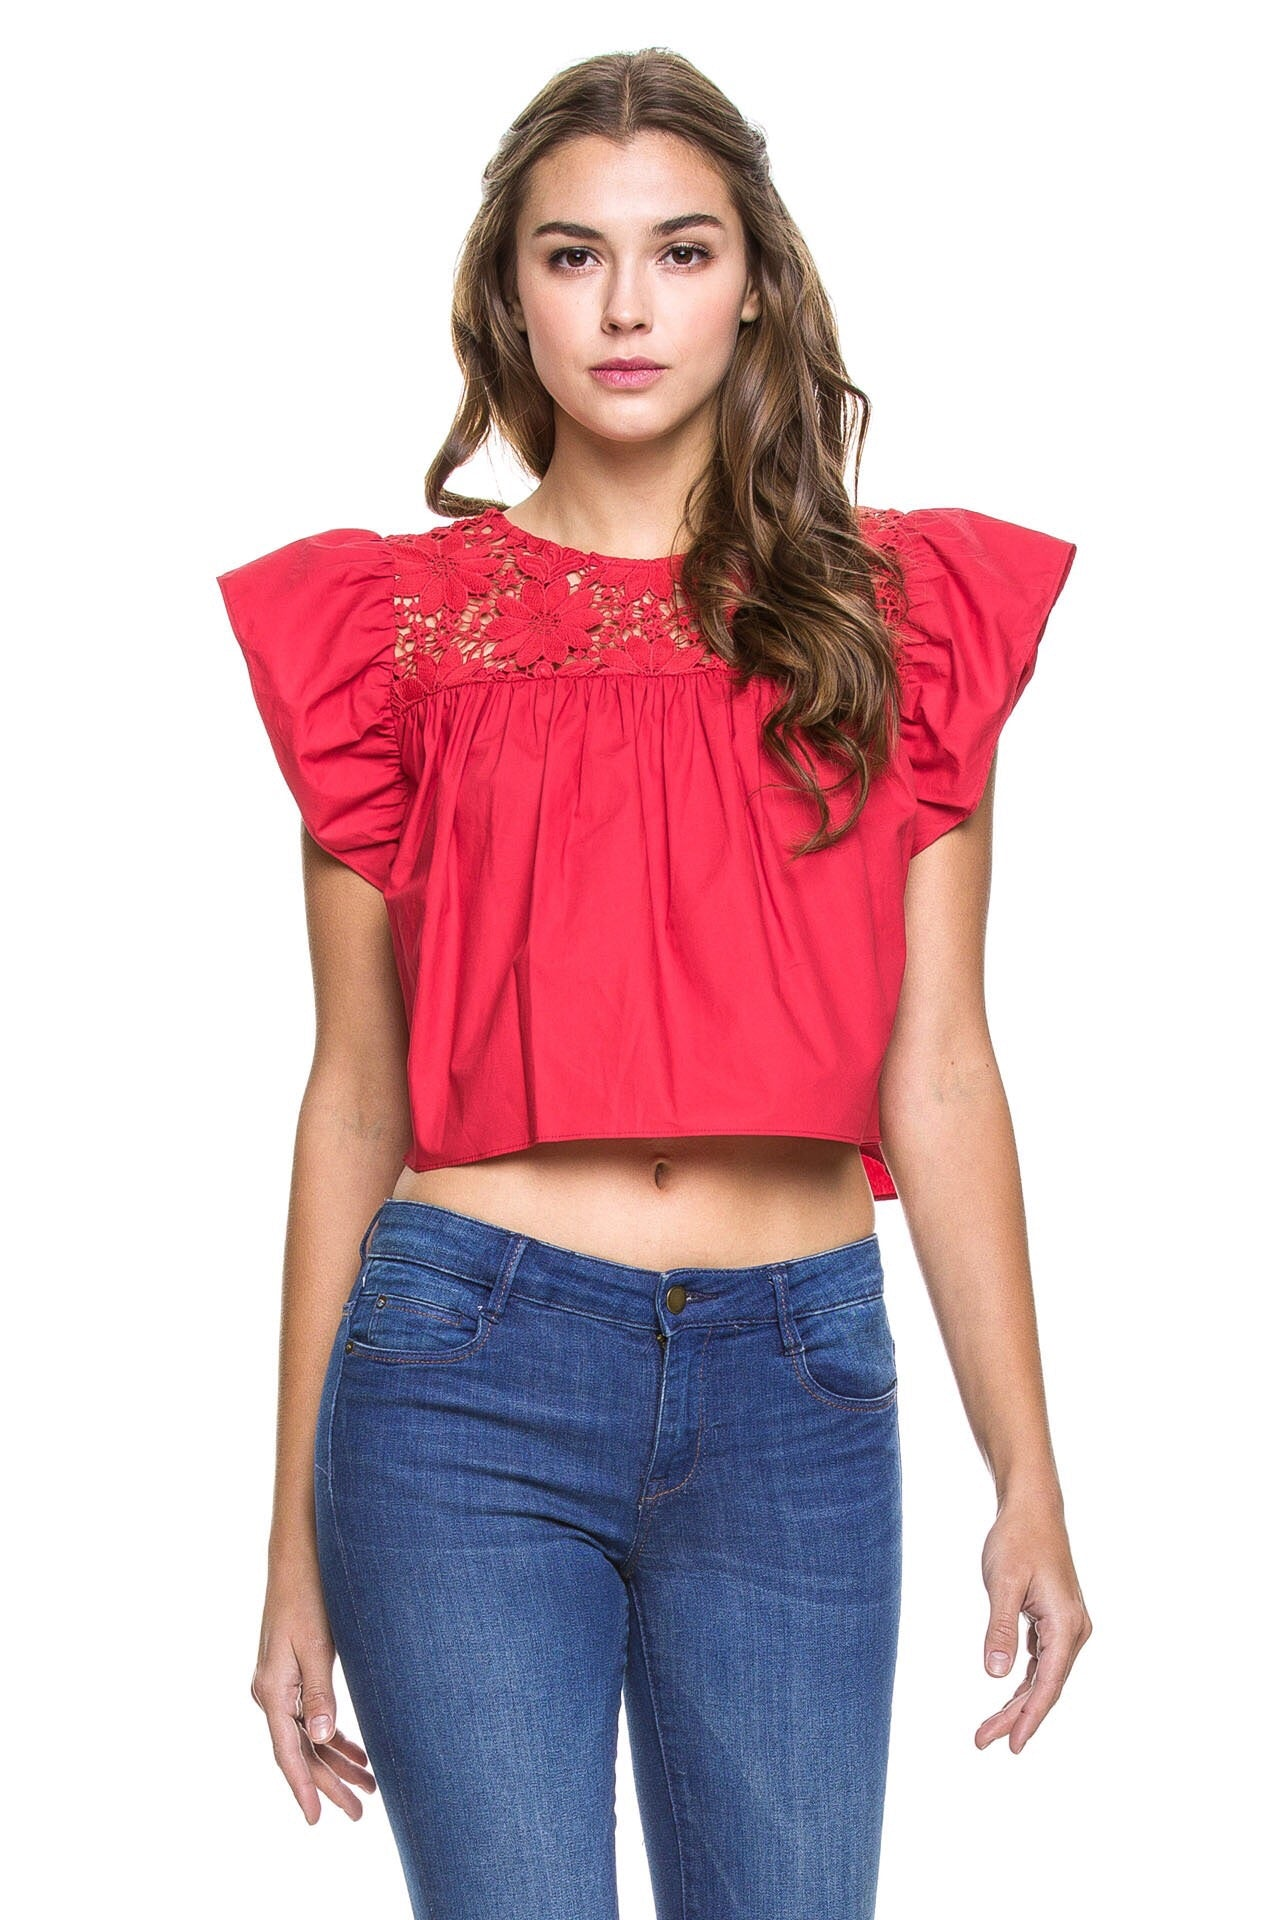 Detailed Lace Top in Ruby Red